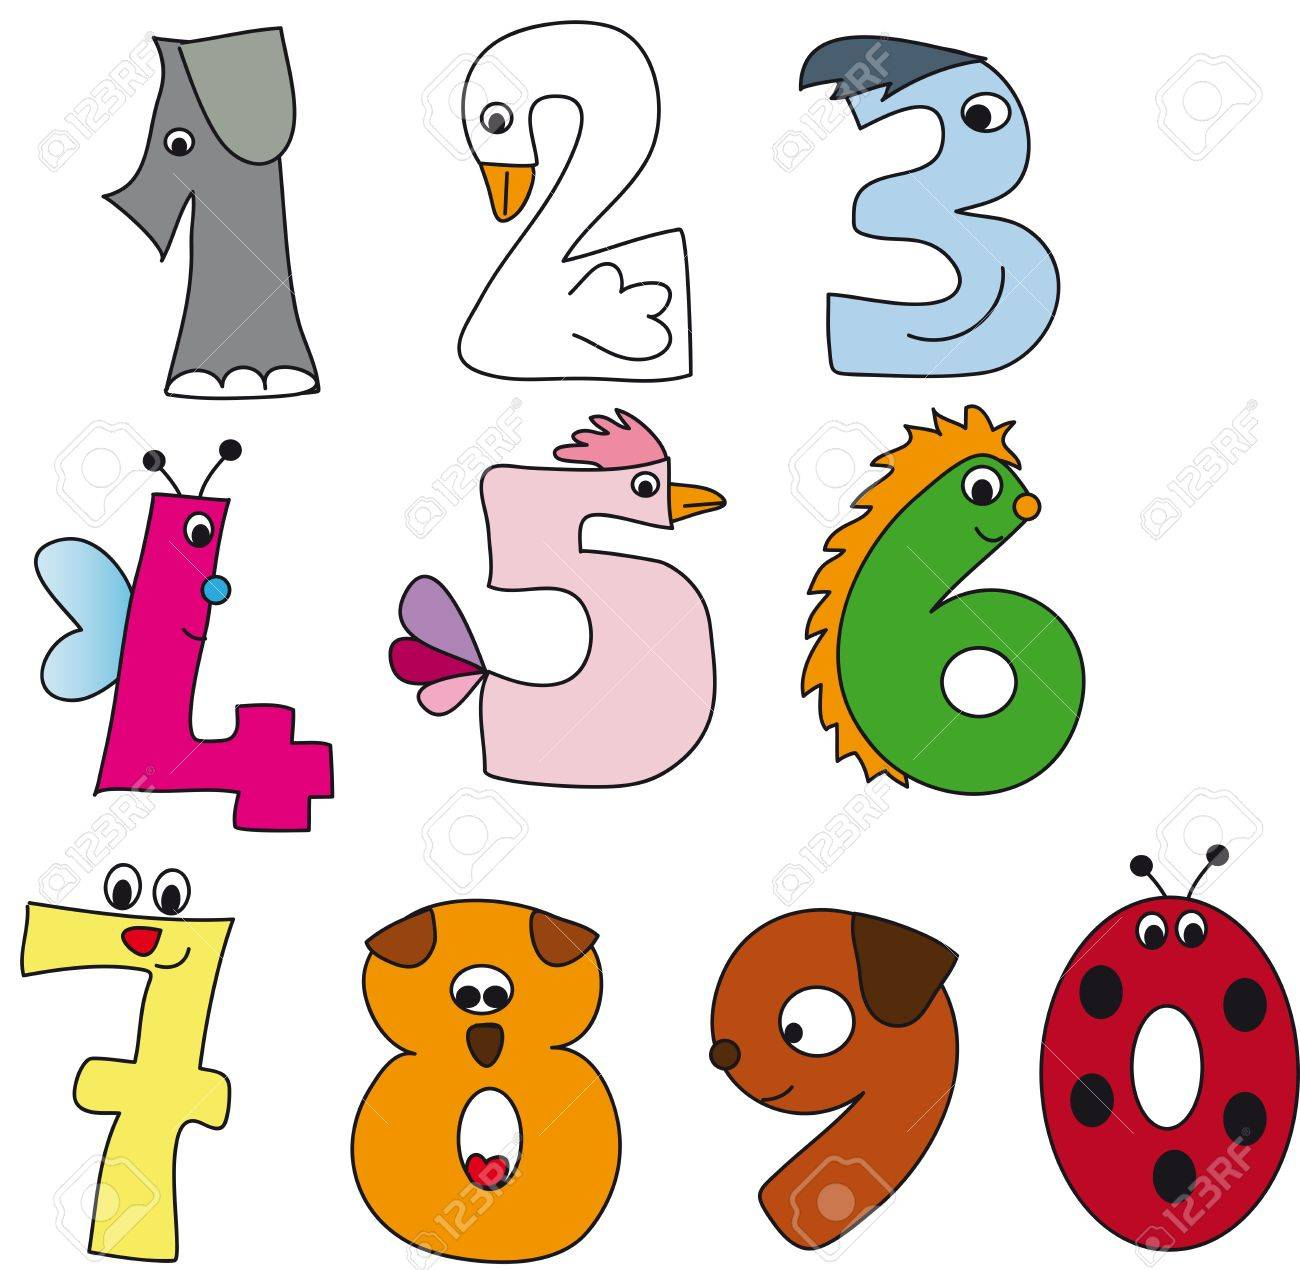 numbers - 15203032